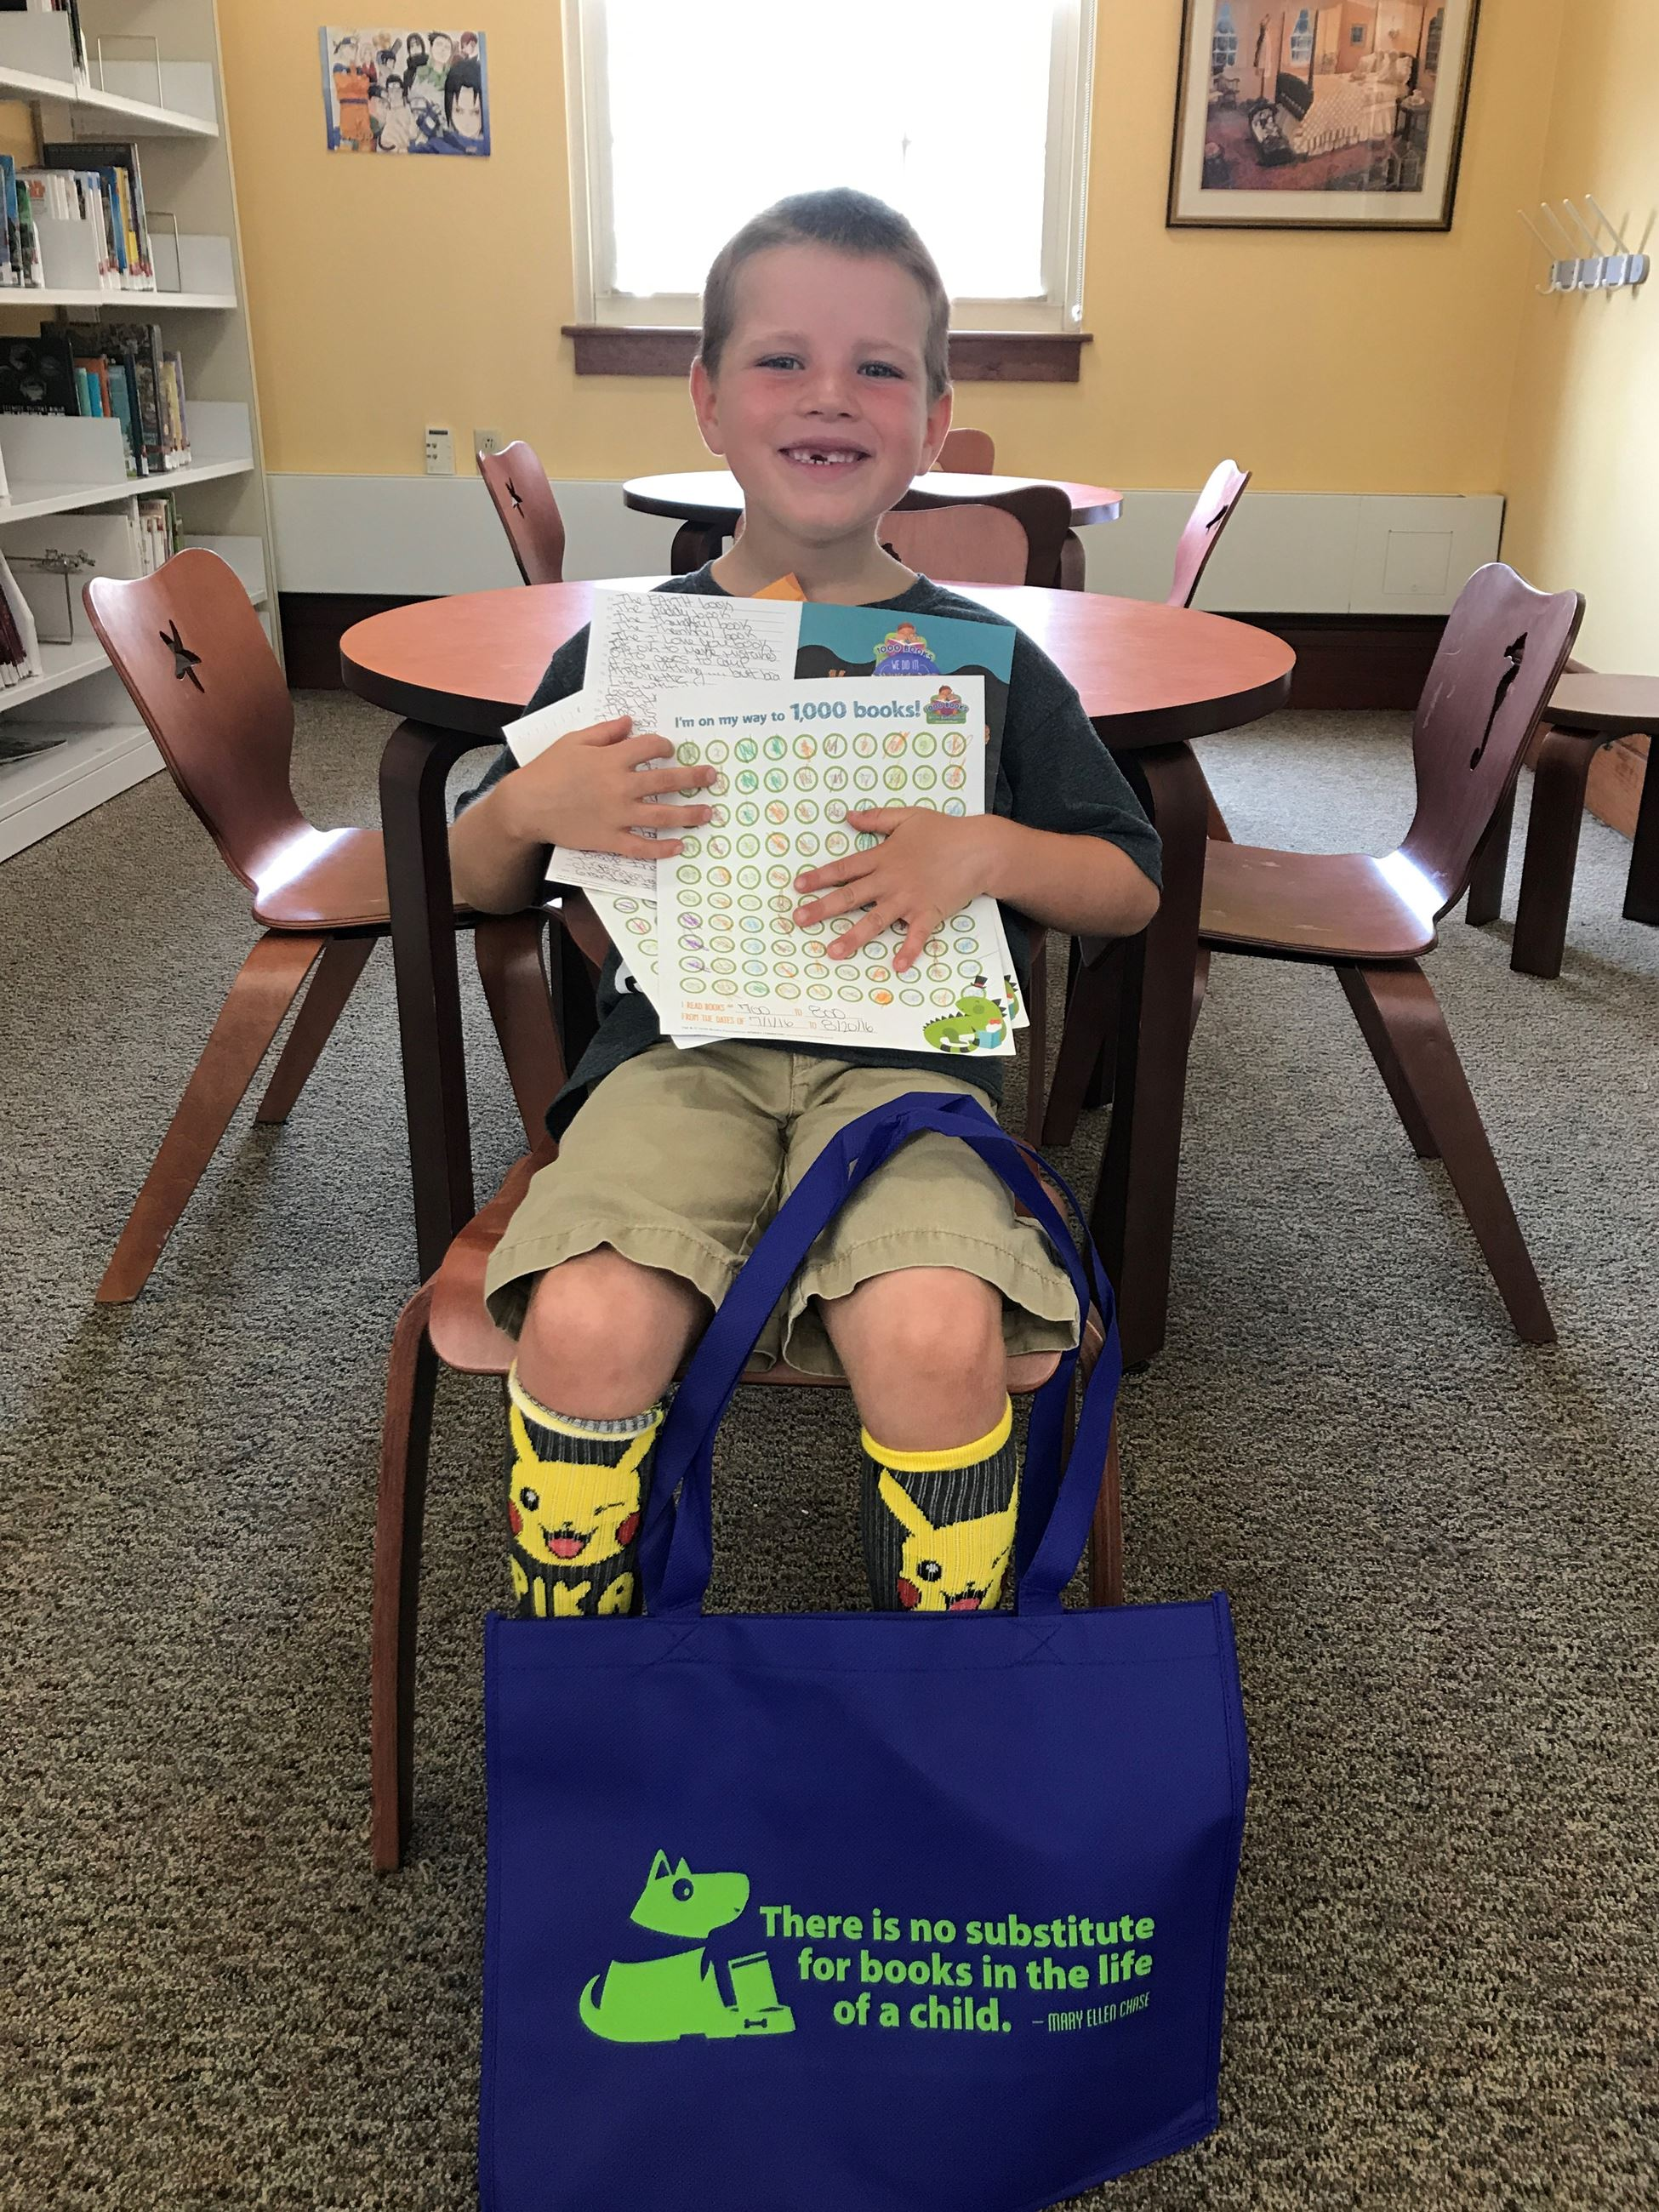 Matthew  completed 1,000 books before kindergarten.